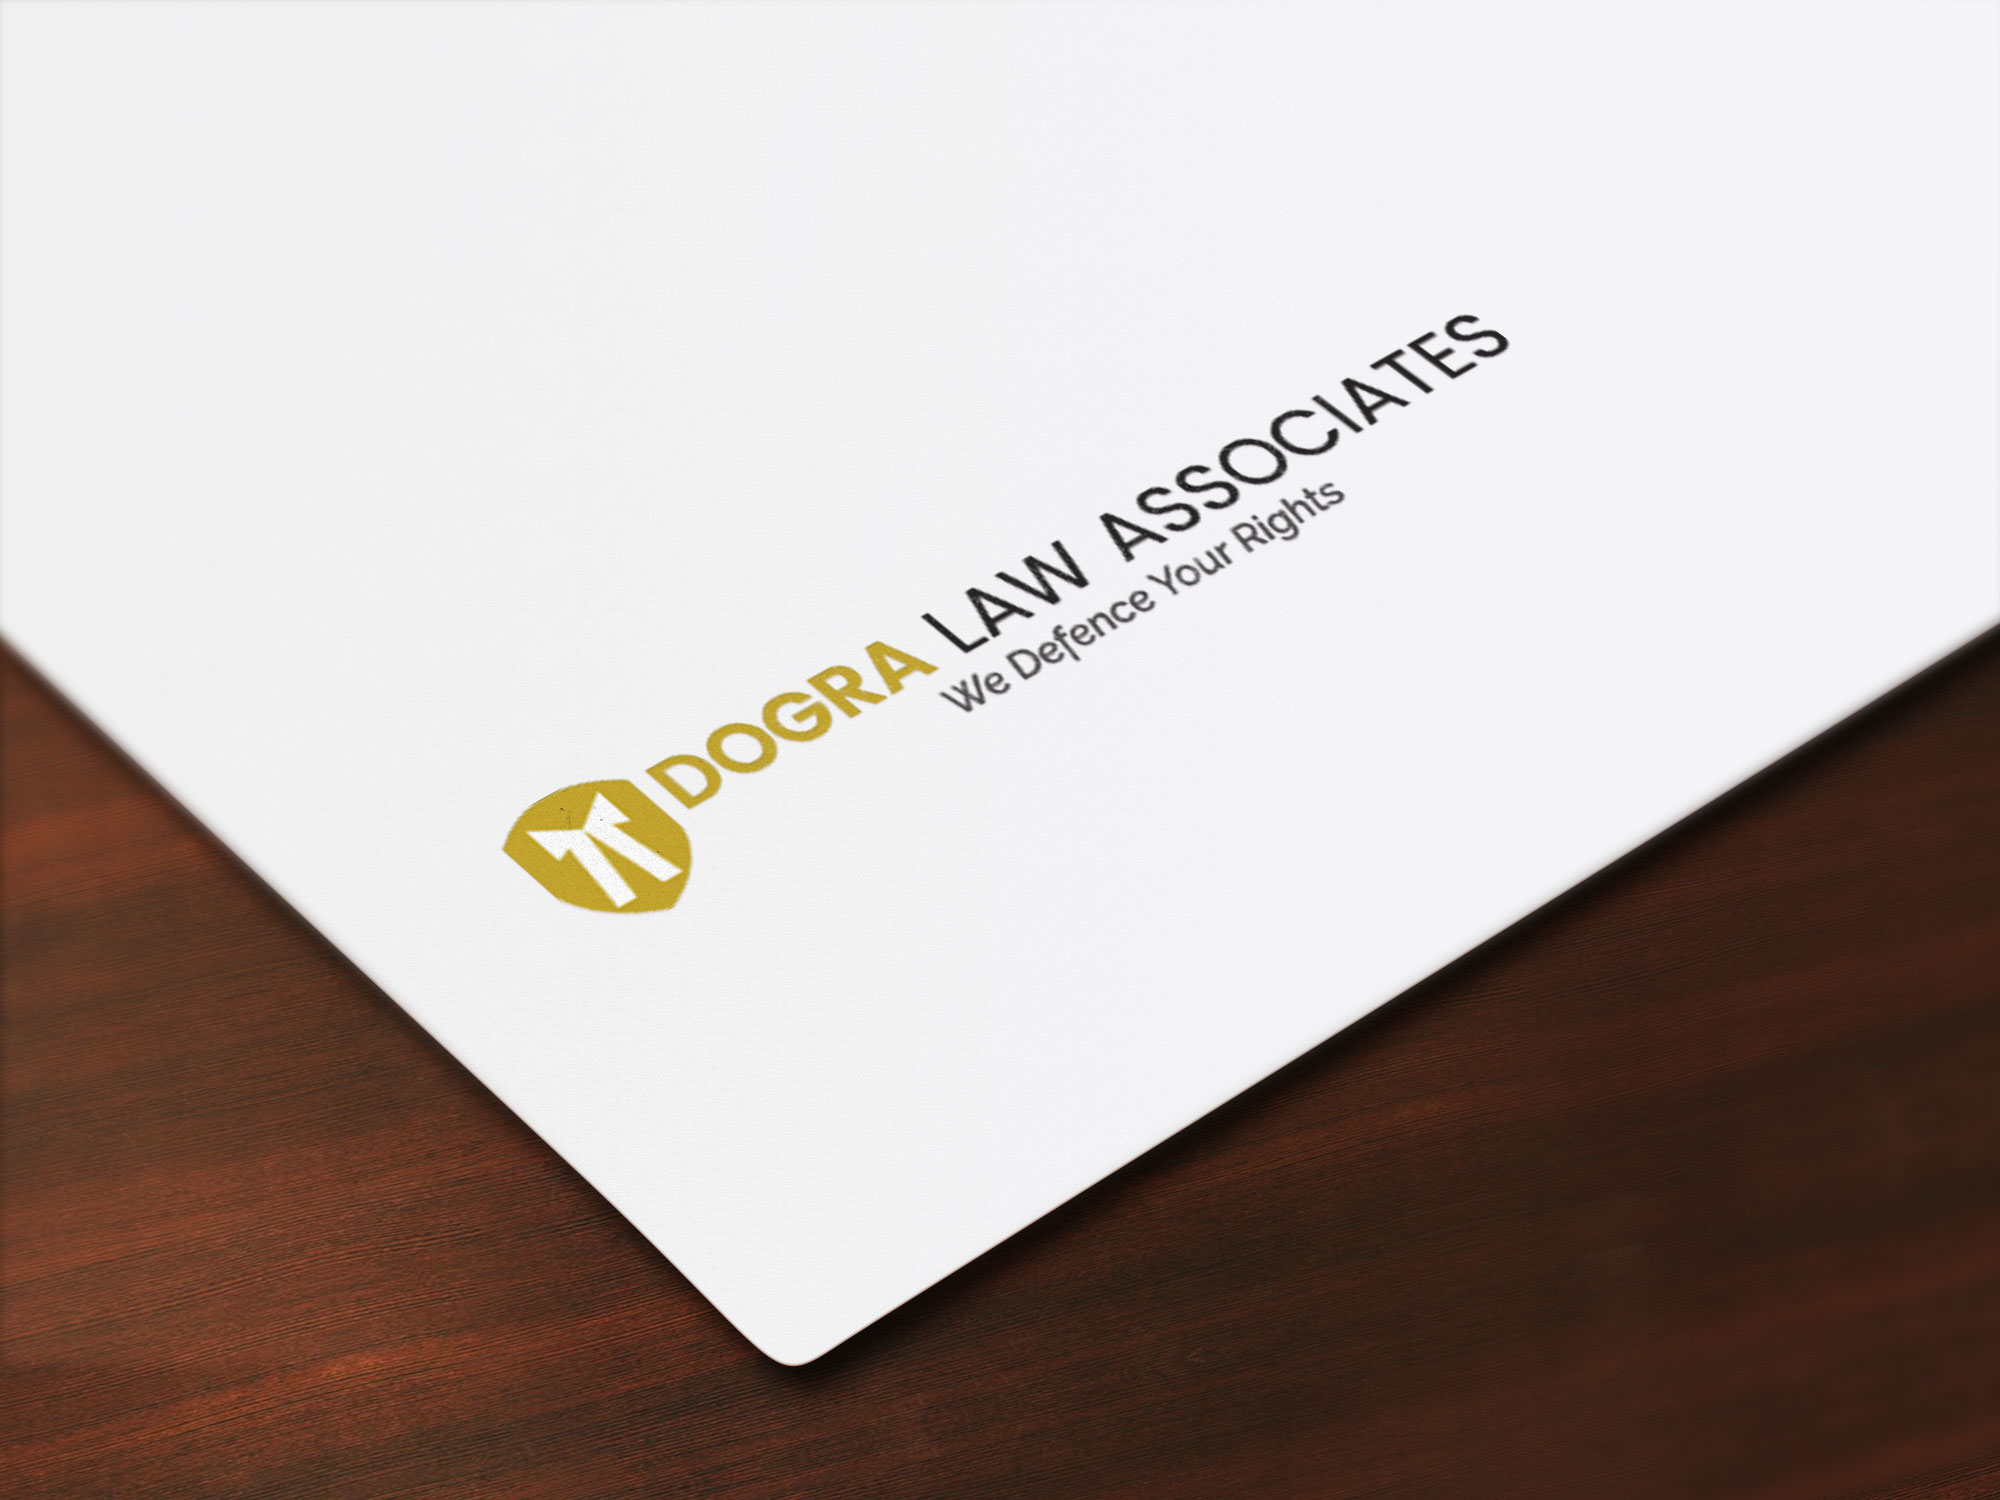 Dogra Law Associates